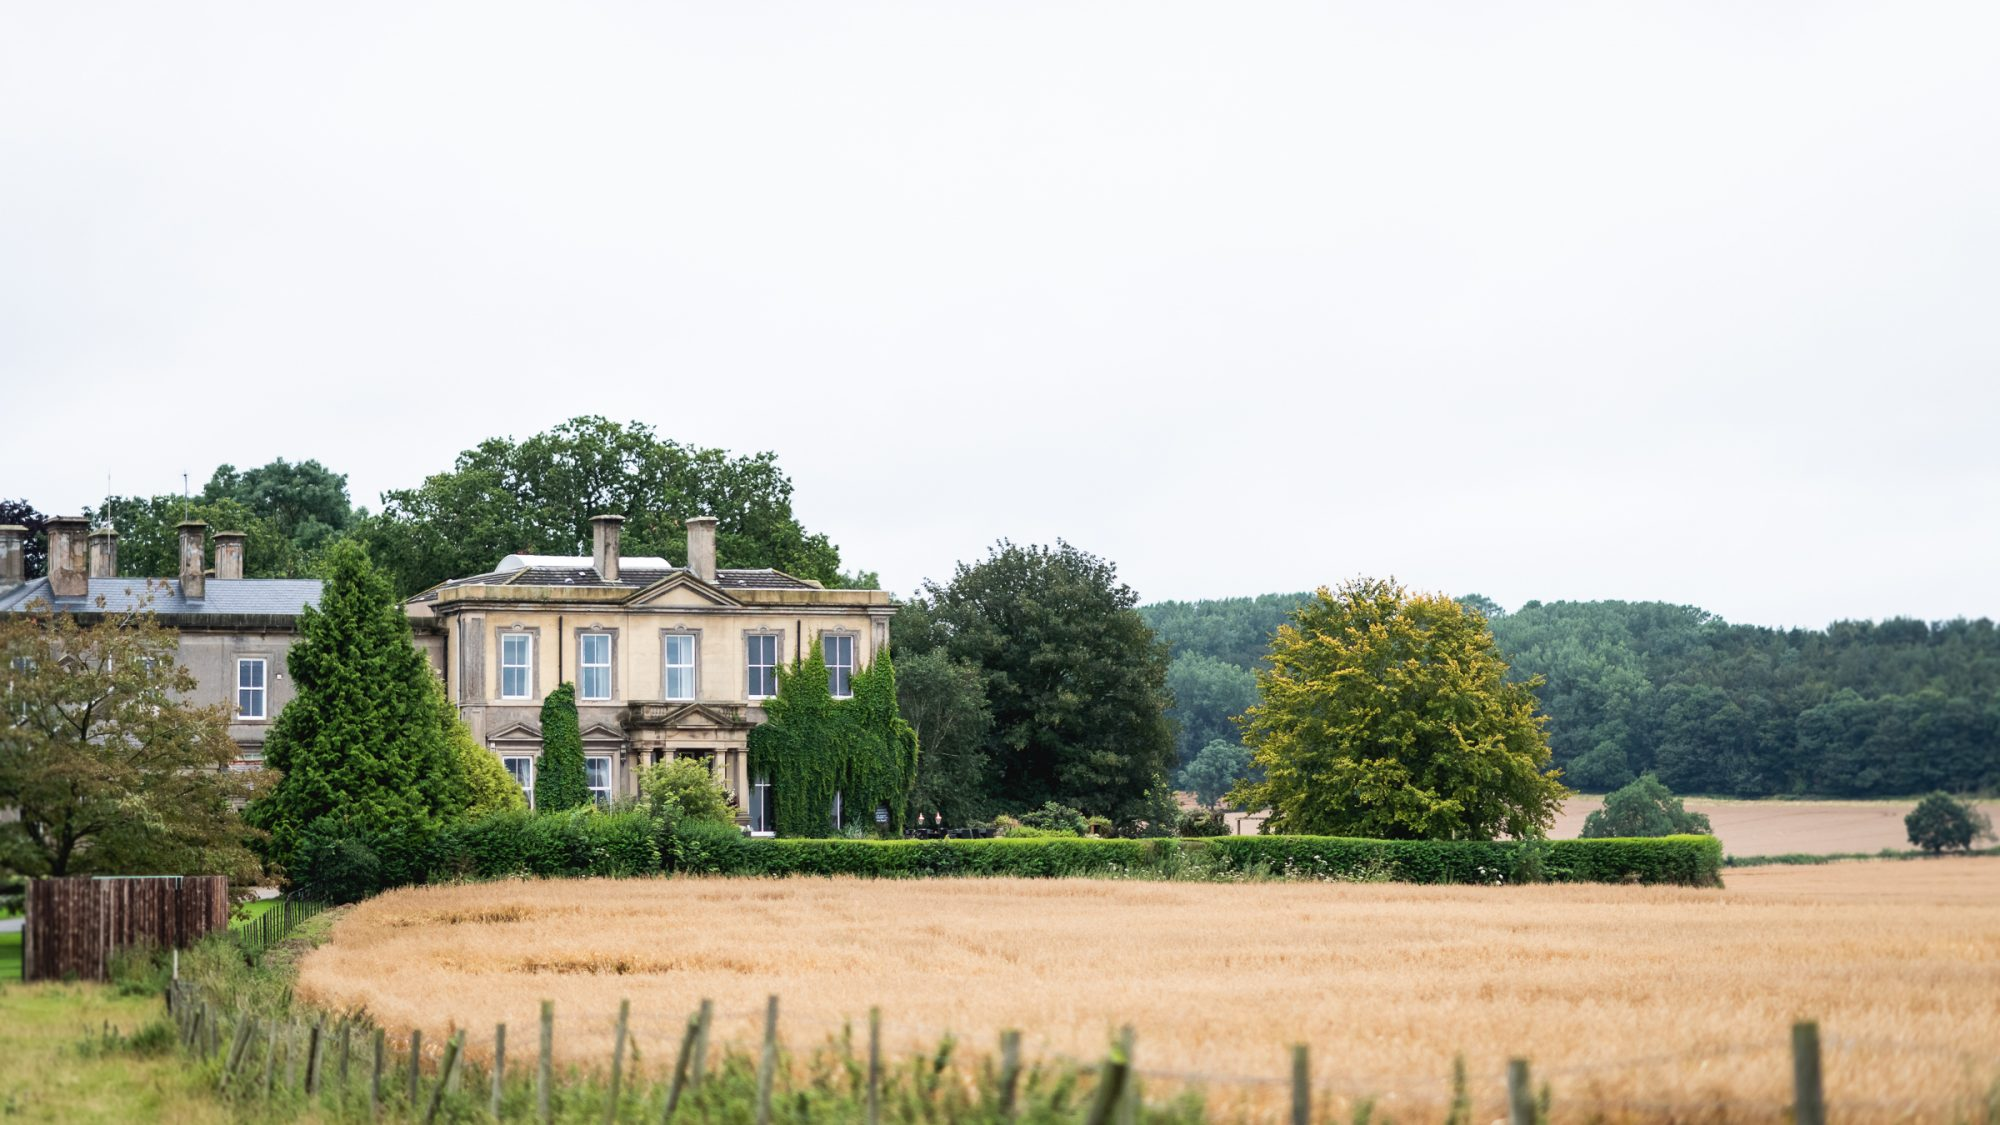 Manor house across field